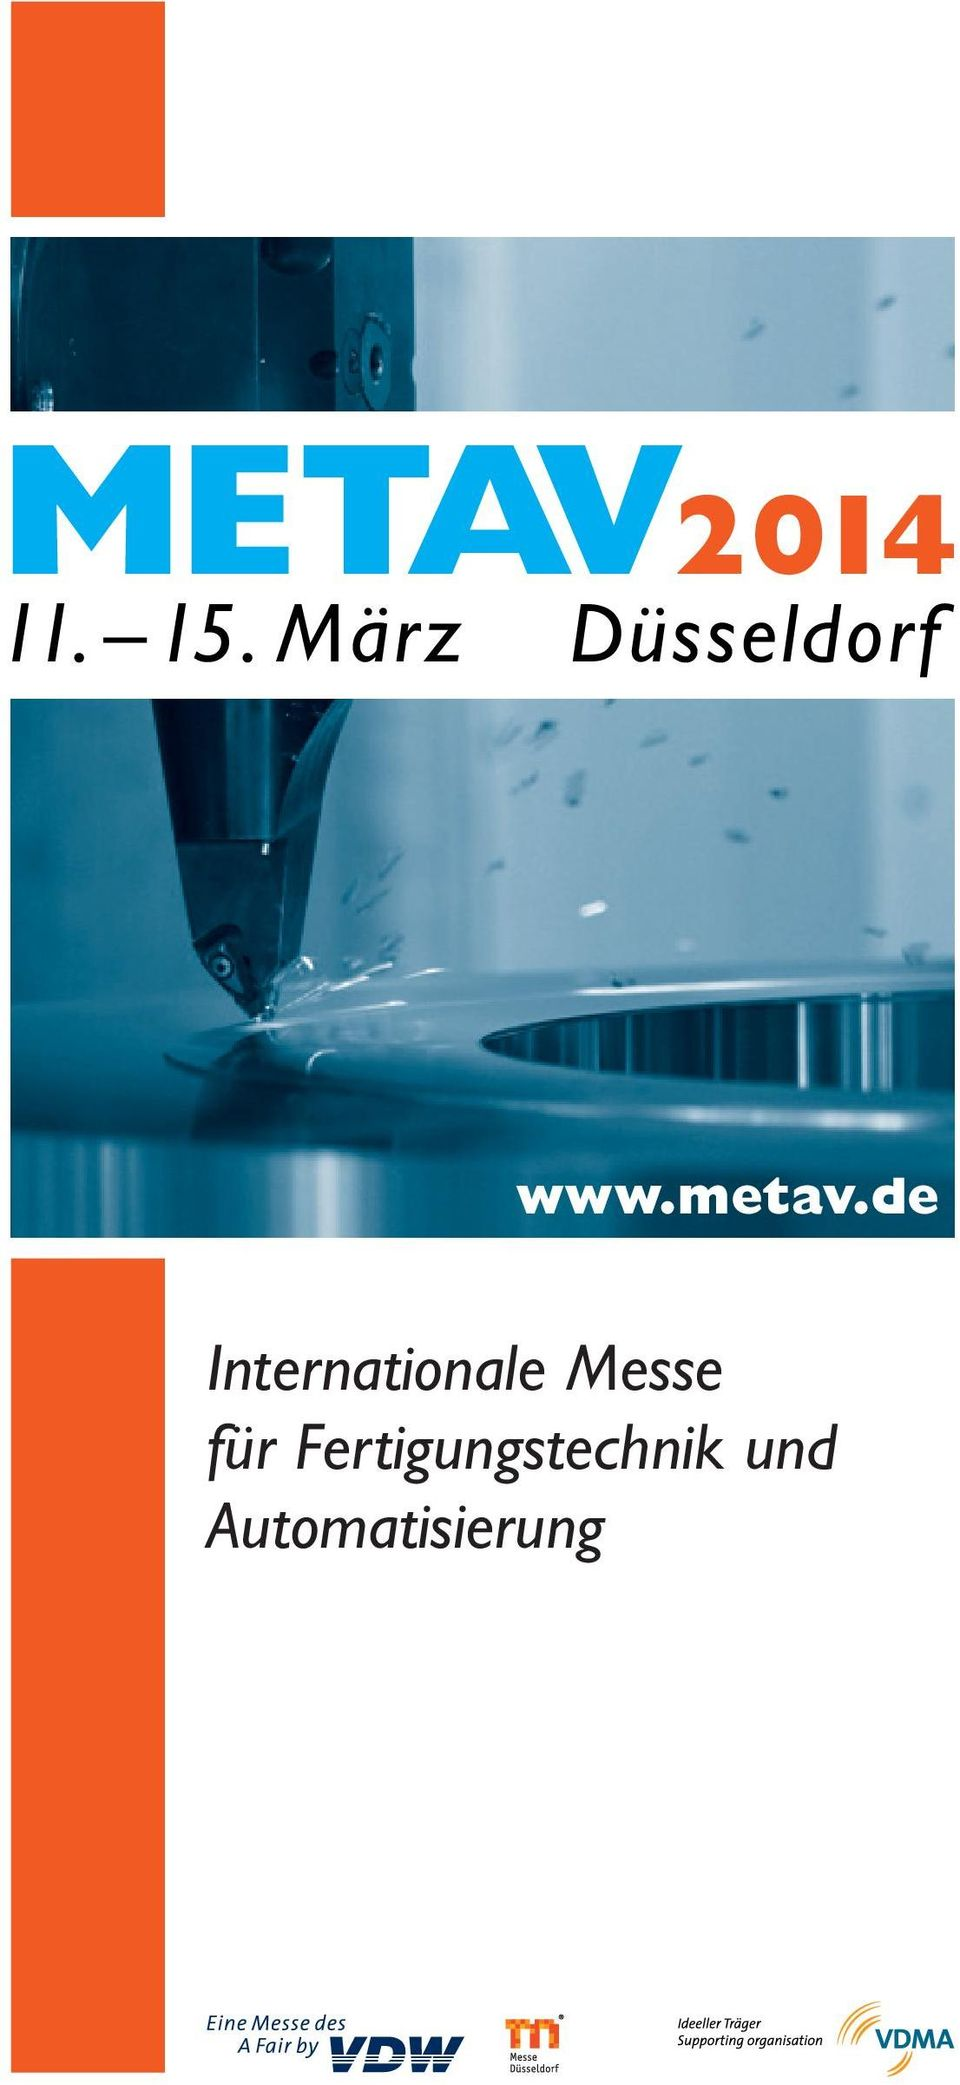 de Internationale Messe für